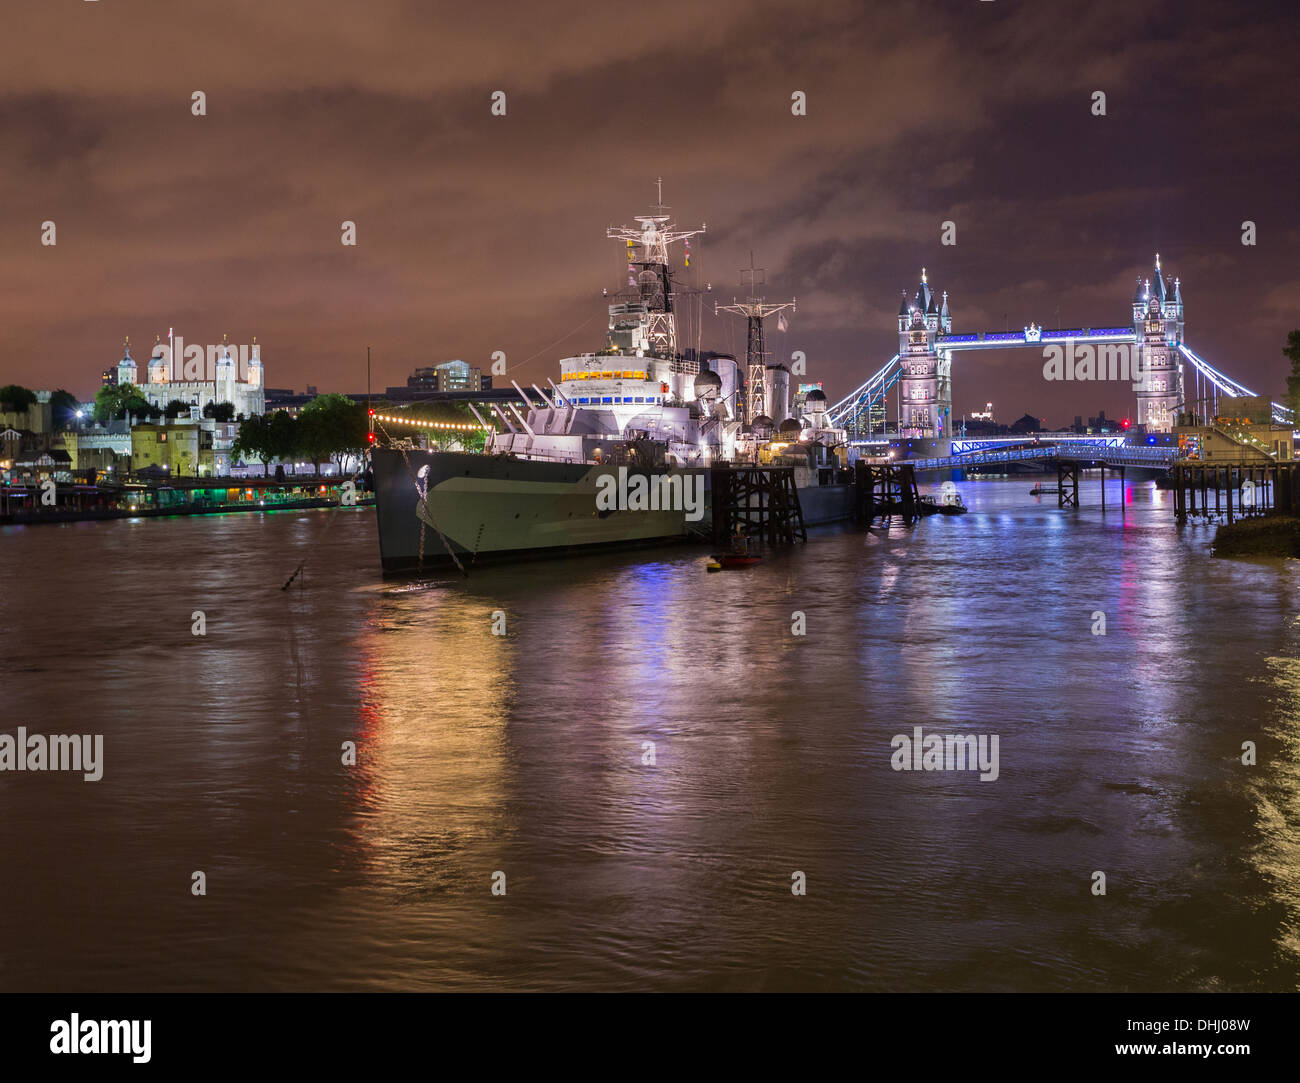 HMS Belfast, Tower Bridge and Tower of London on River Thames, London, UK at night - Stock Image